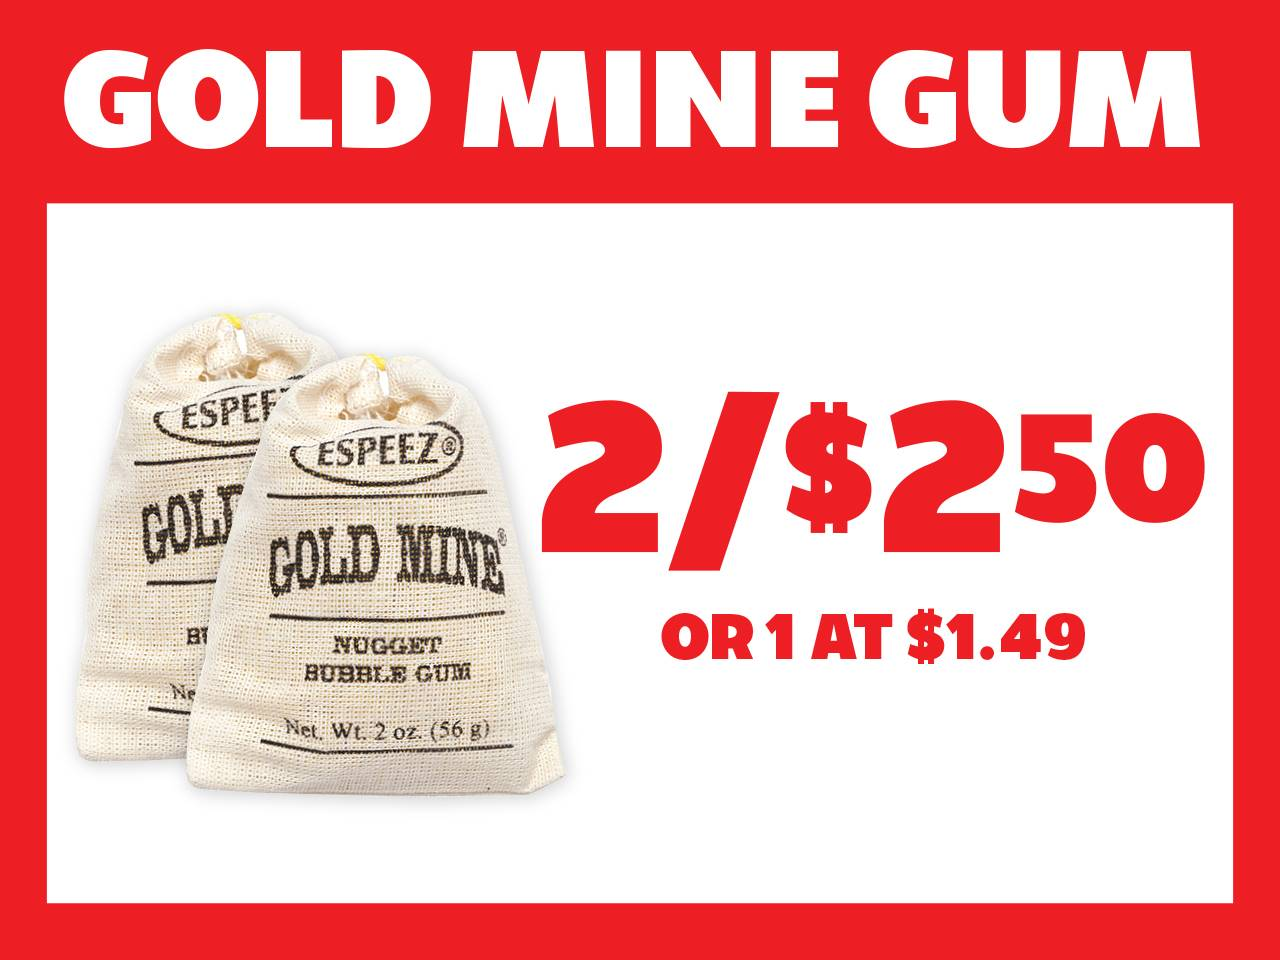 2 Gold Mine Gum for $2.50 or 1 at $1.49